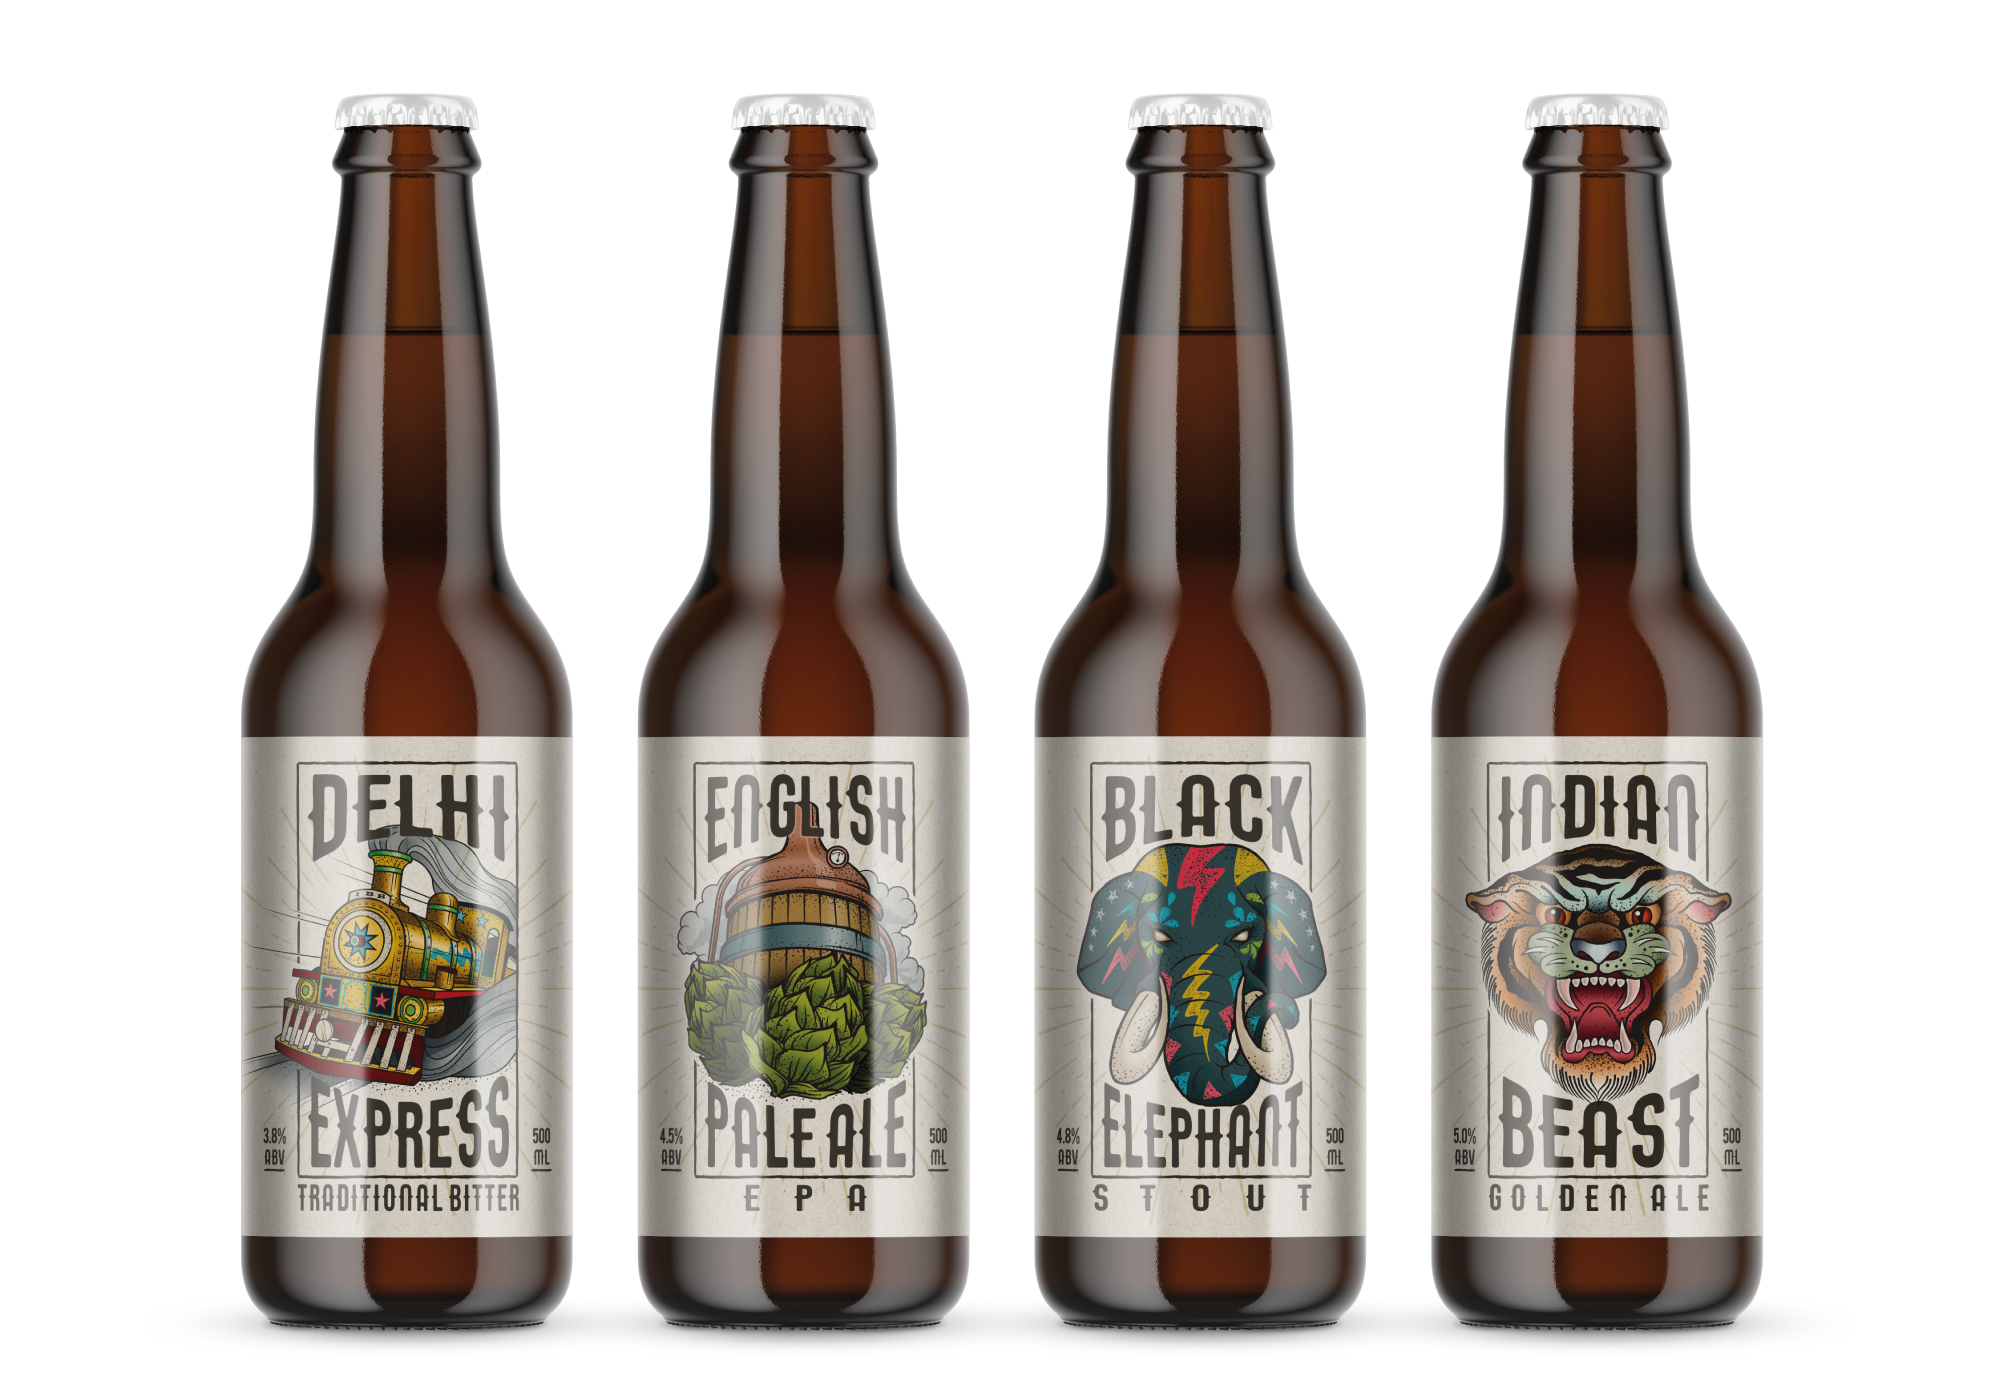 Indian Brewery Bottle designs by AD Profile